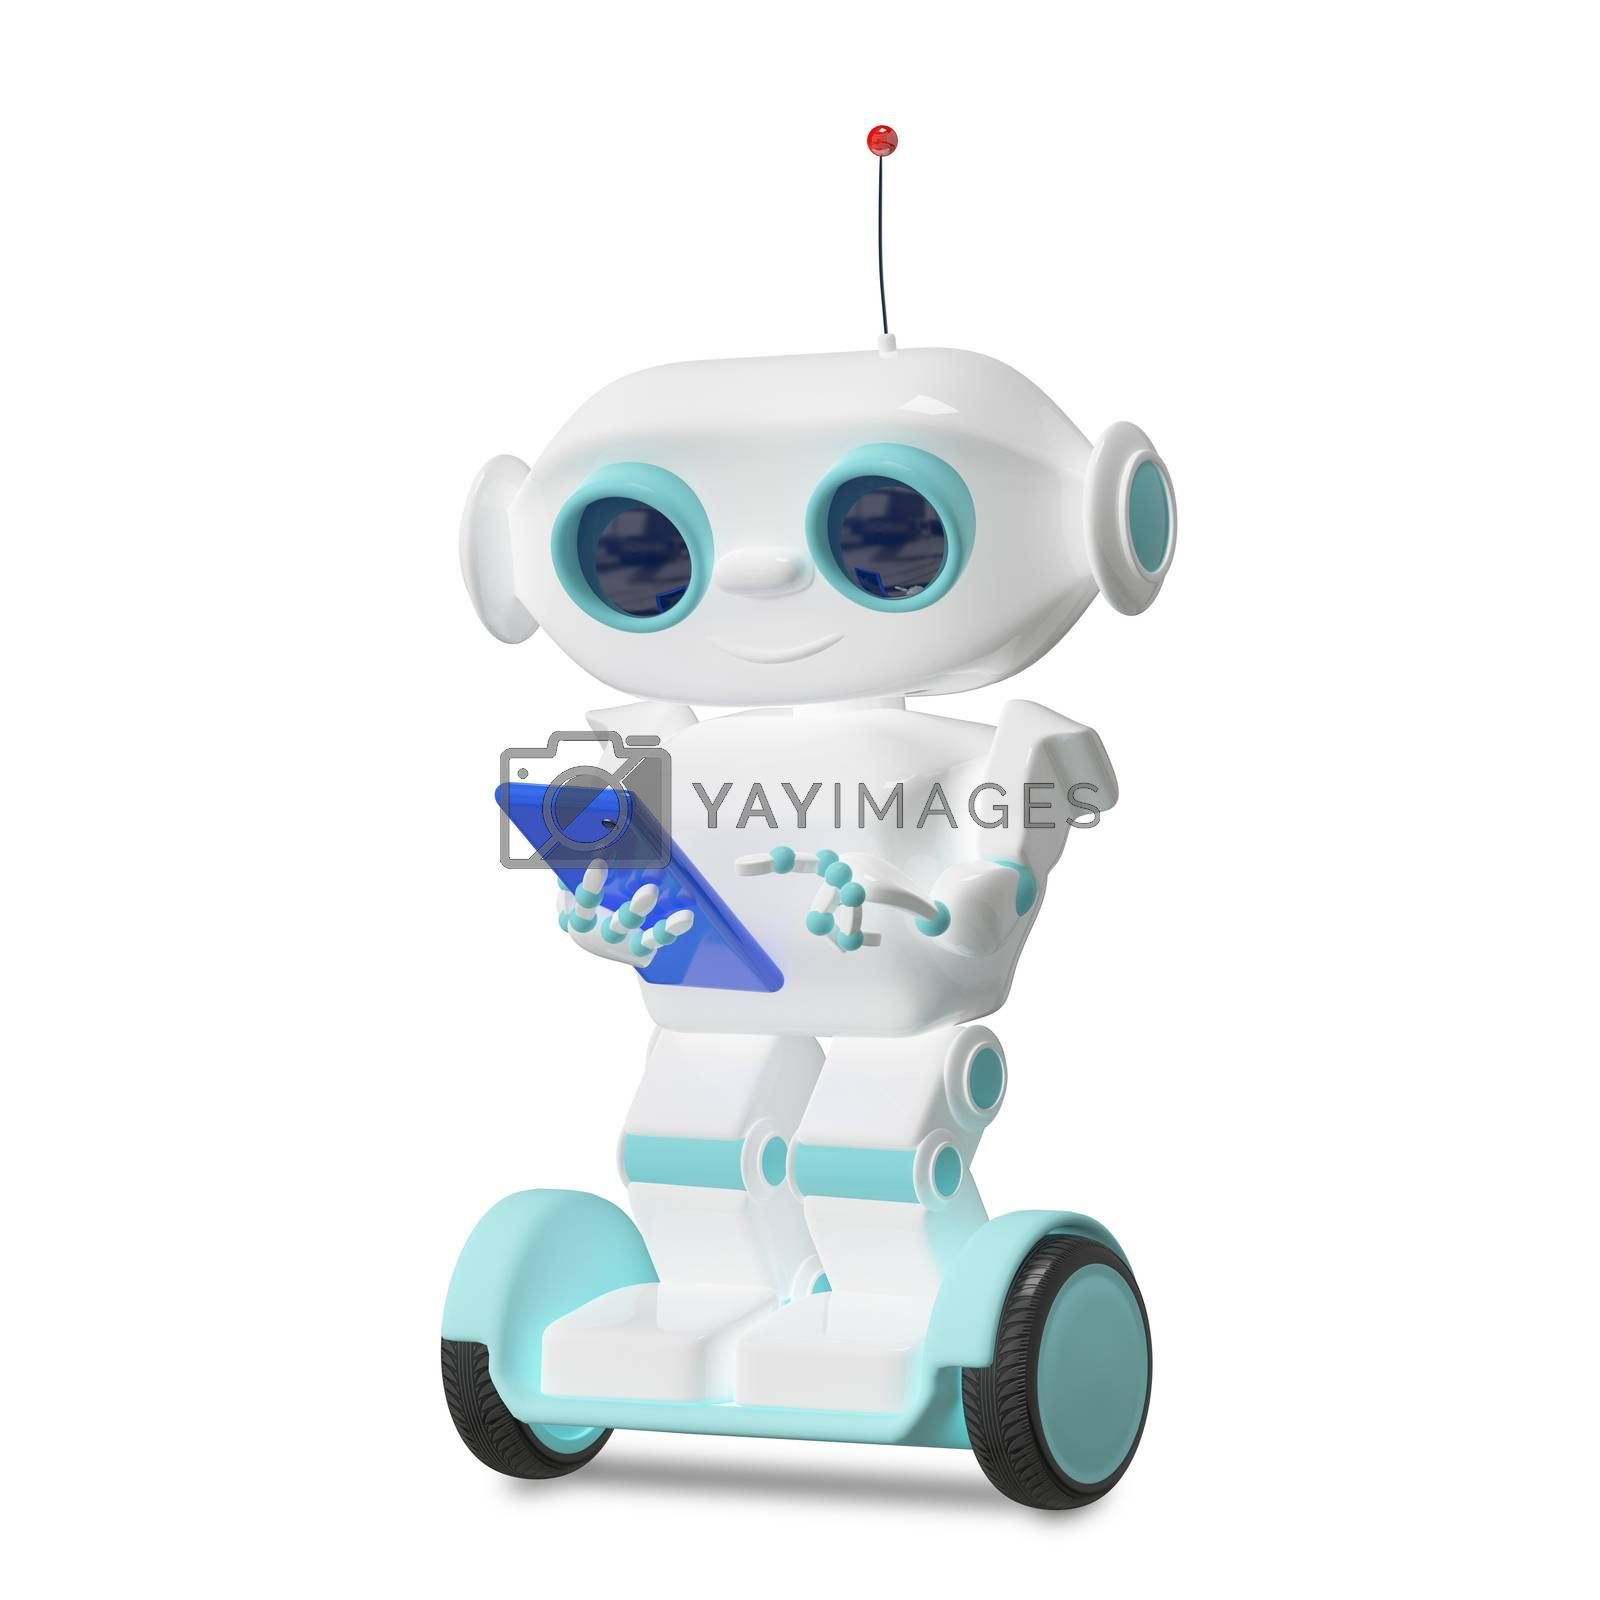 3D Illustration Robot on Scooter with Smartphone on a White Background